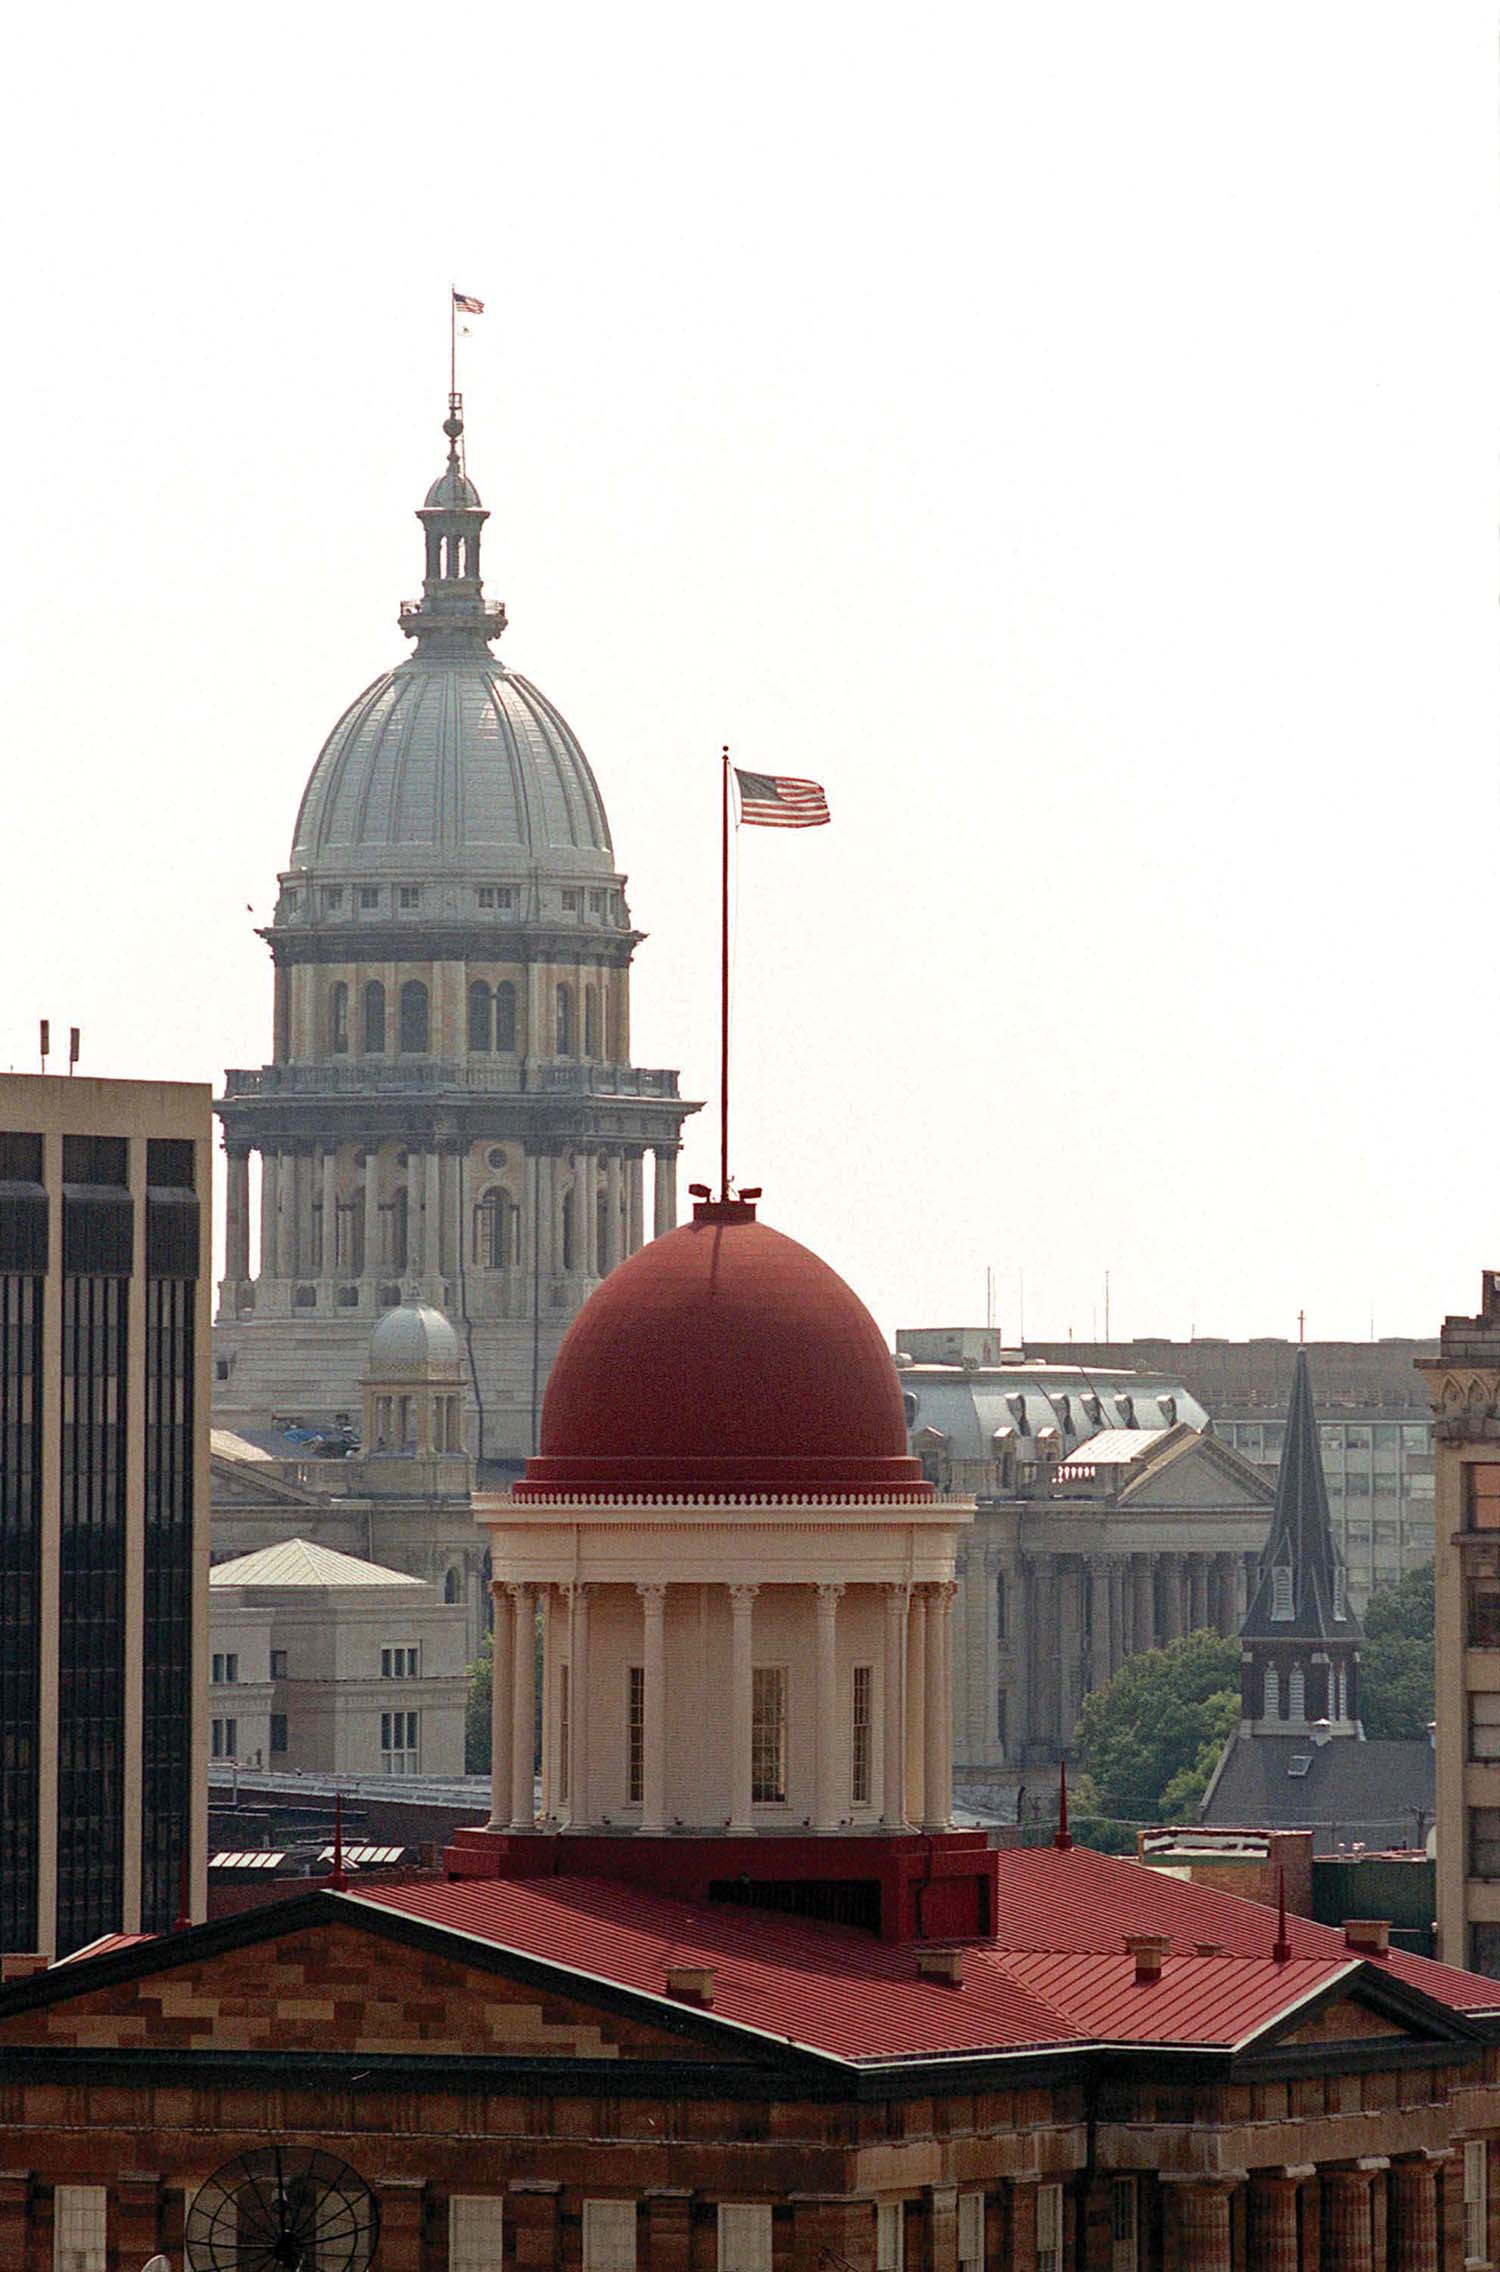 The Old State Capitol and Illinois State Capitol line up in this view from a downtown rooftop. Bill Hagen/The State Journal-Register